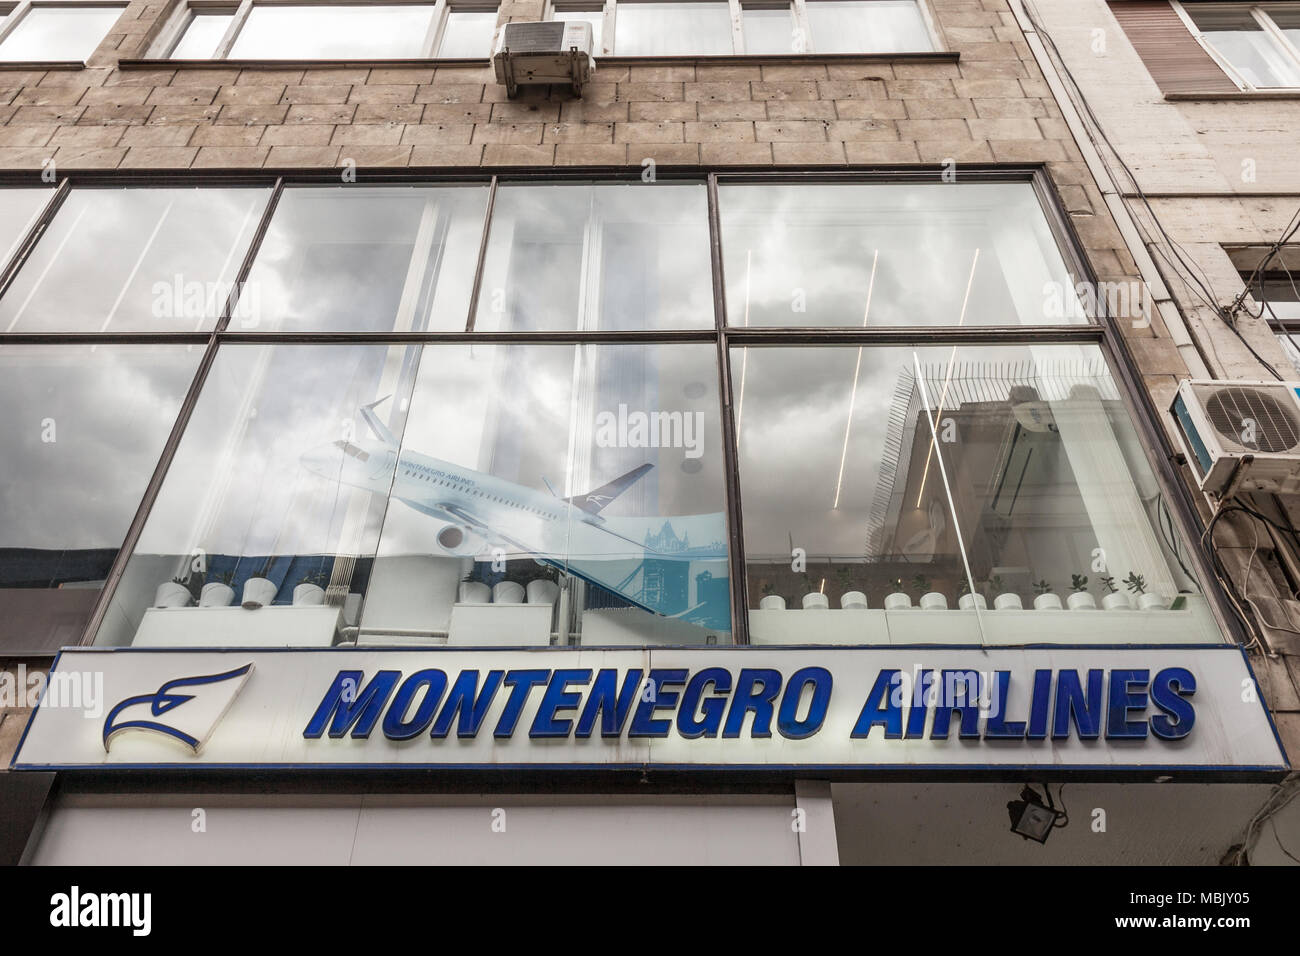 BELGRADE, SERBIA - MARCH 31, 2018: Montenegro Airlines logo on their main office for Serbia. Montenegro Airlines is the national air carrier of Monten - Stock Image